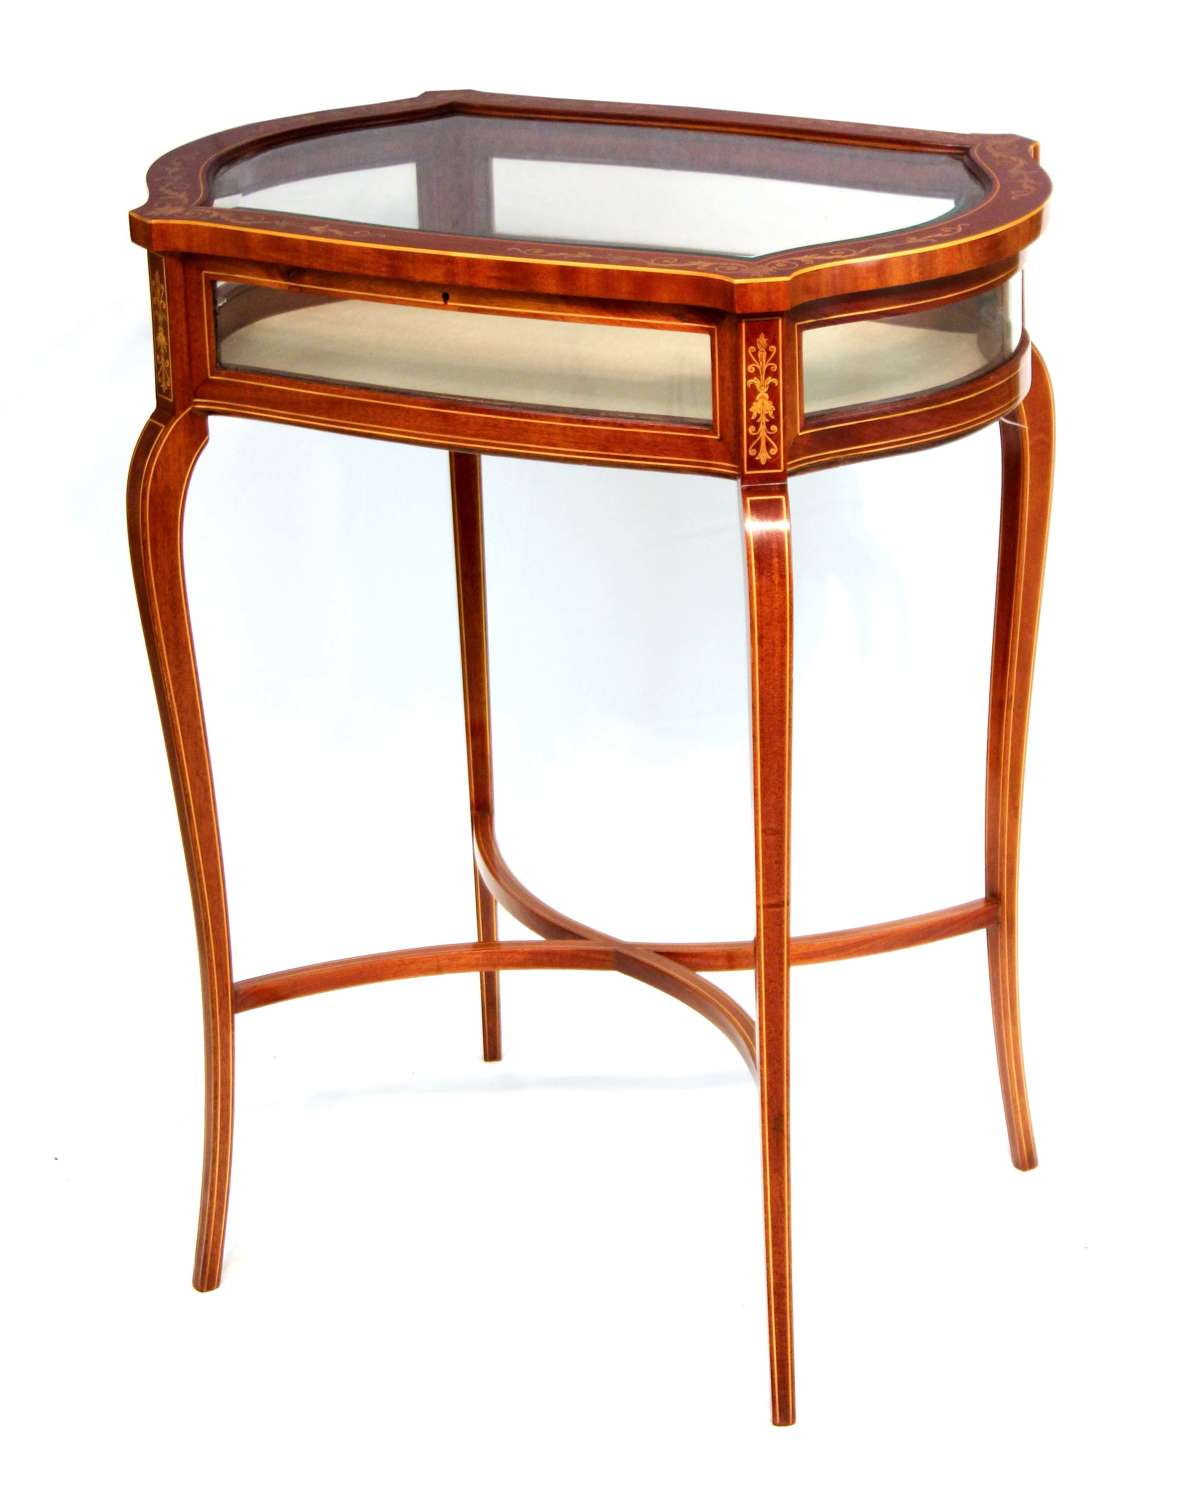 A Superb Late Victorian Mahogany Inlaid Bijouterie Table